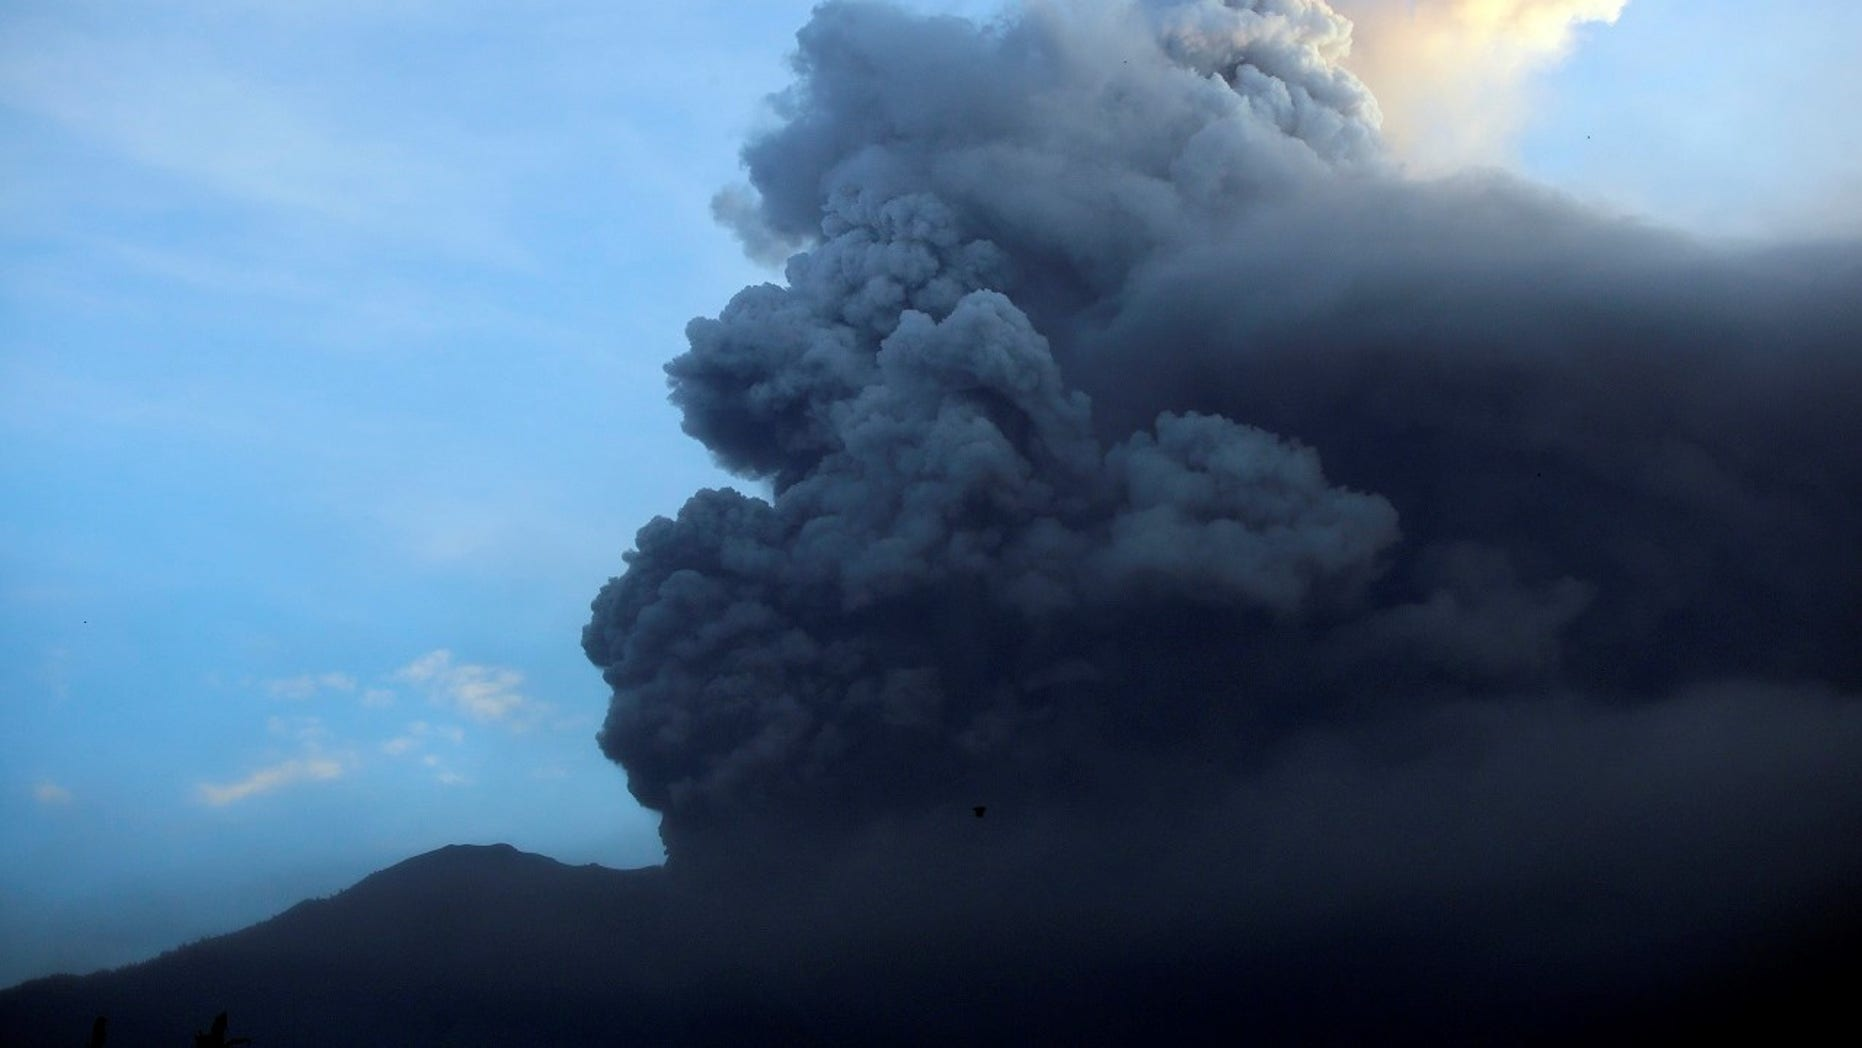 A view of the Mount Agung volcano erupting at sunrise in Karangasem, Bali island, Indonesia, Sunday, Nov. 26, 2017. A volcano on the Indonesian tourist island of Bali erupted for the second time in a week on Saturday, disrupting international flights even as authorities said the island remains safe. (AP Photo/Firdia Lisnawati)